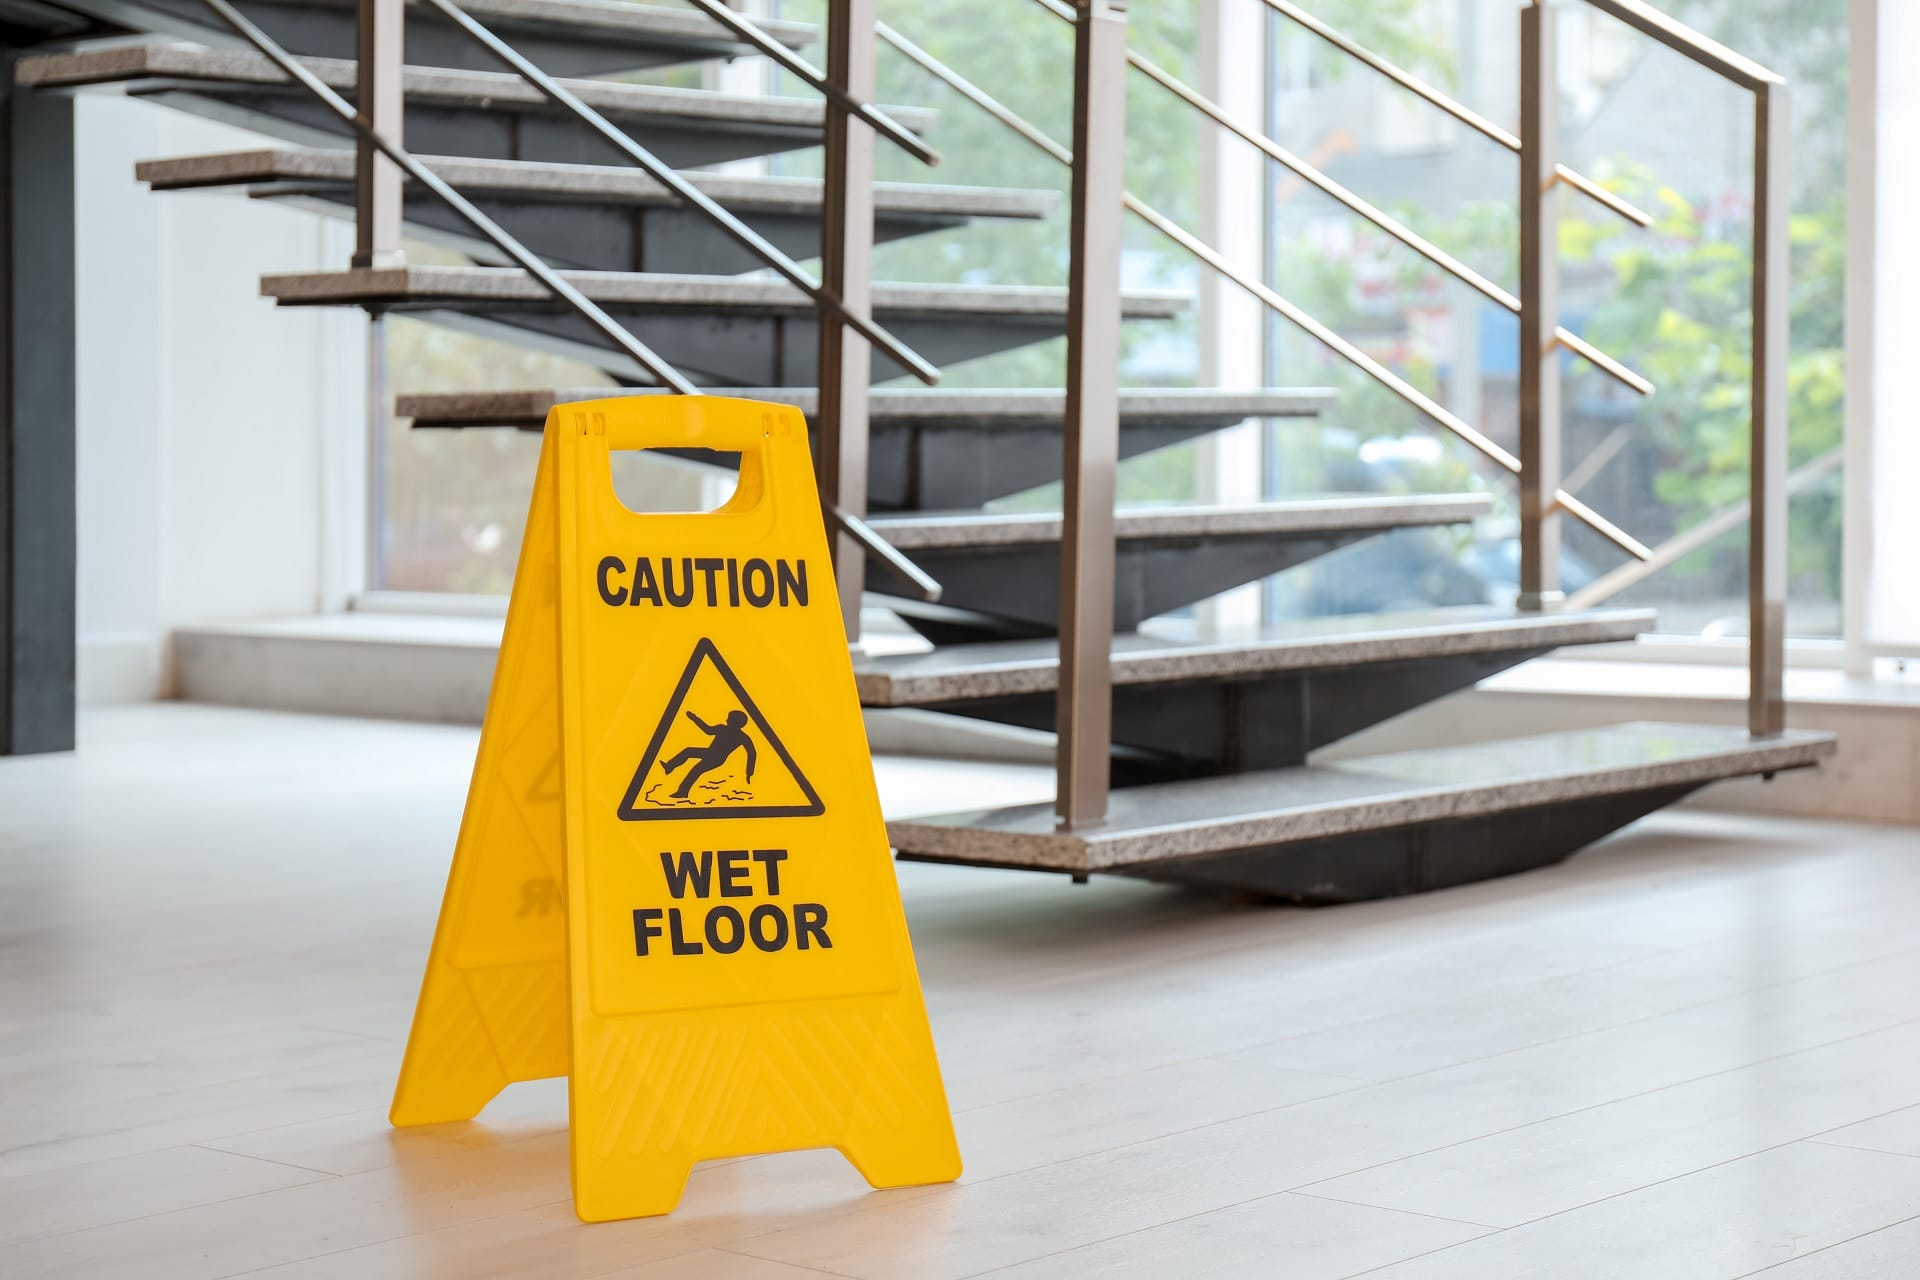 How Long Does A Slip And Fall Case Take To Settle In NYC